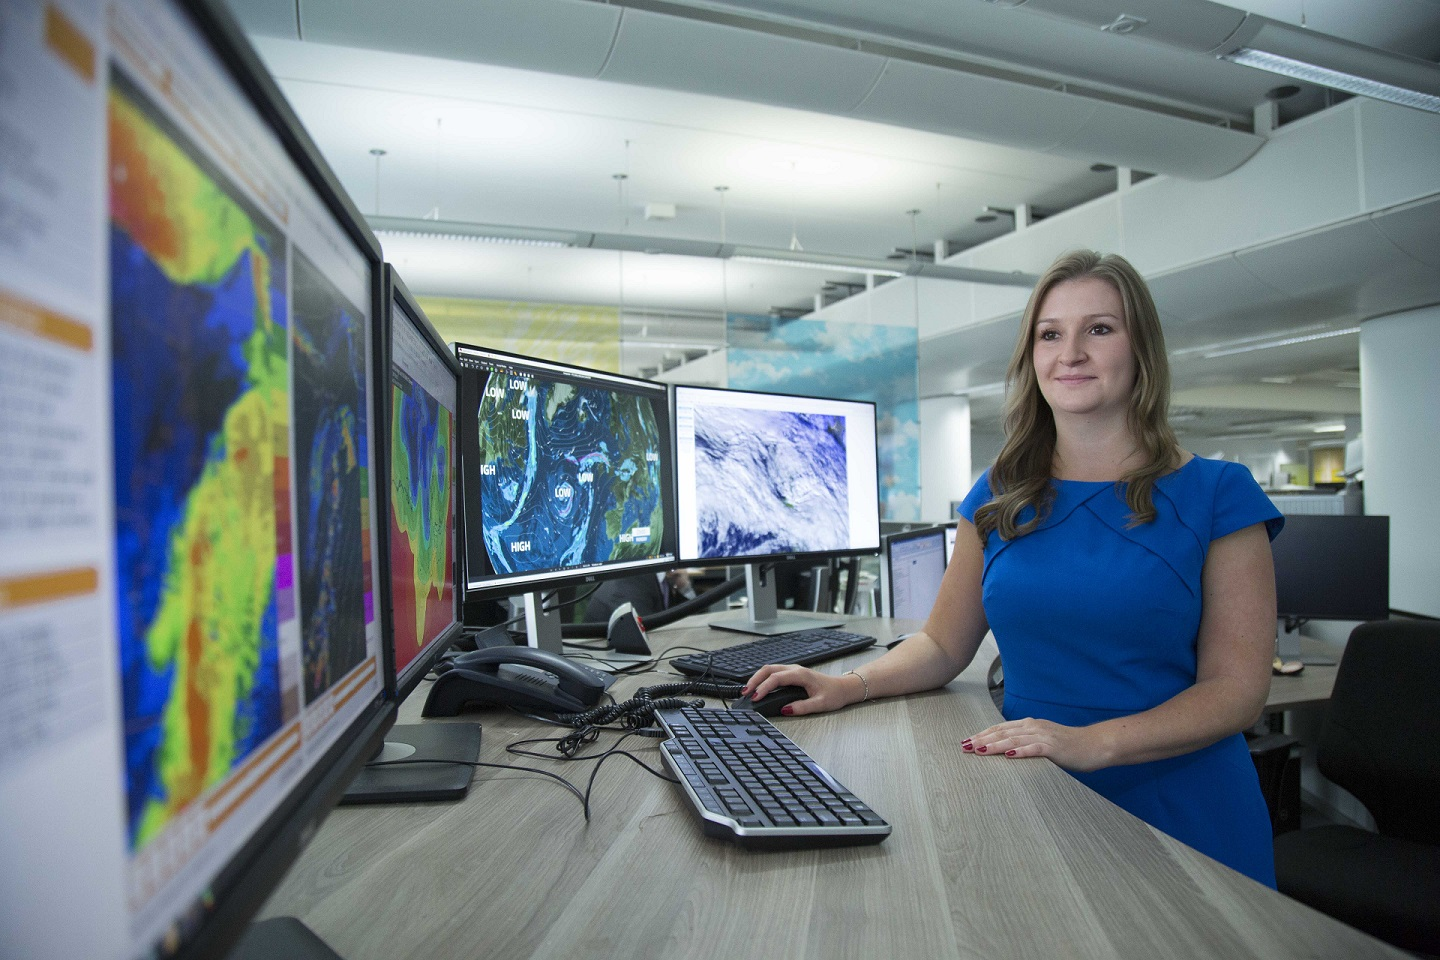 A meteorologist working at their desk